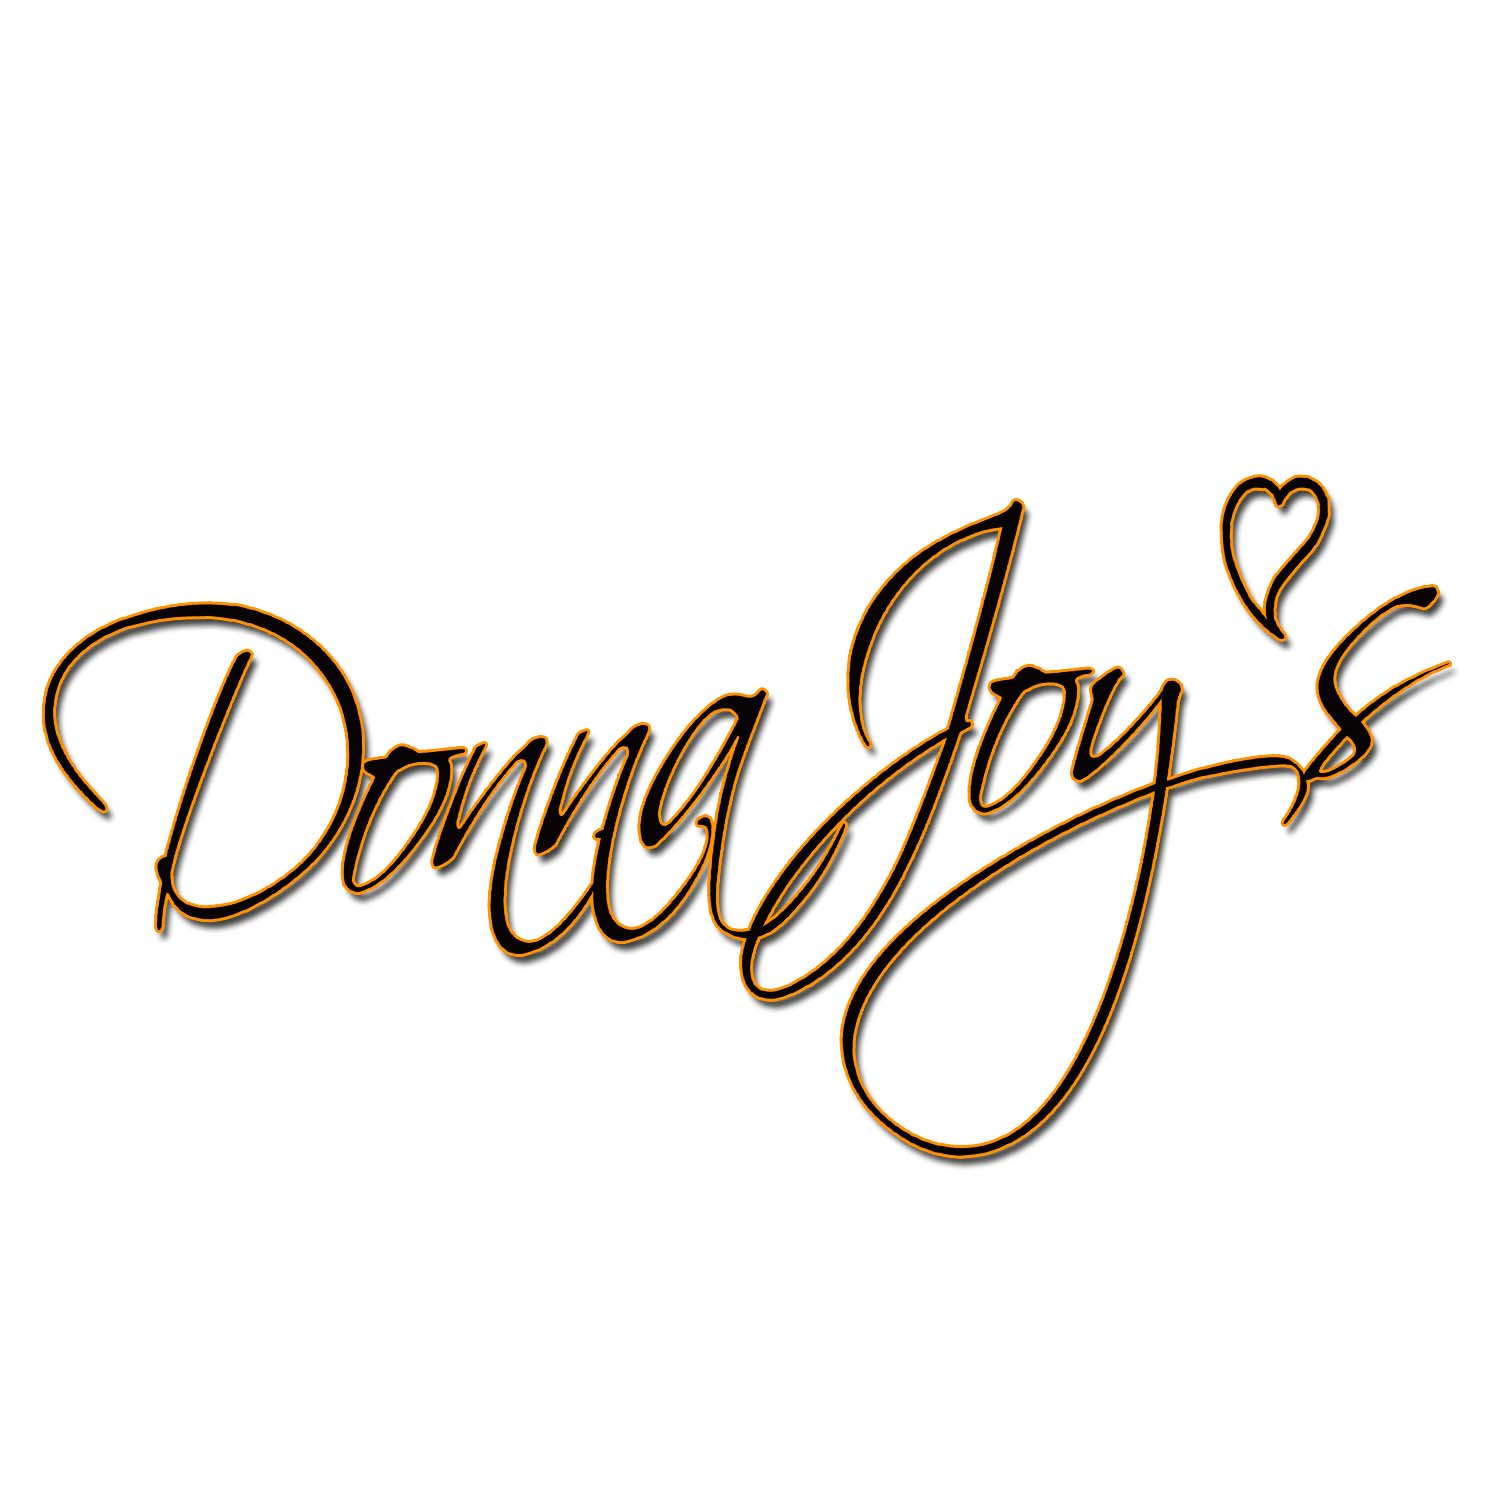 Donna Joy's Sedona Sweet Arts